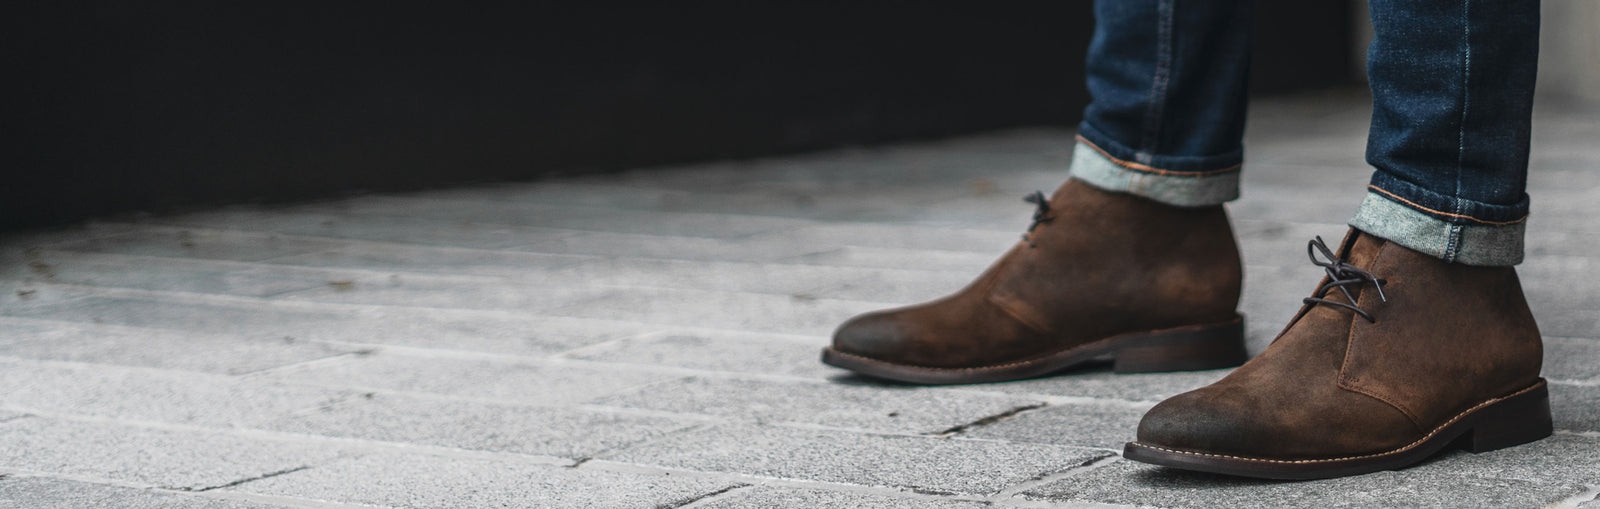 Men's Boots | The Chukka